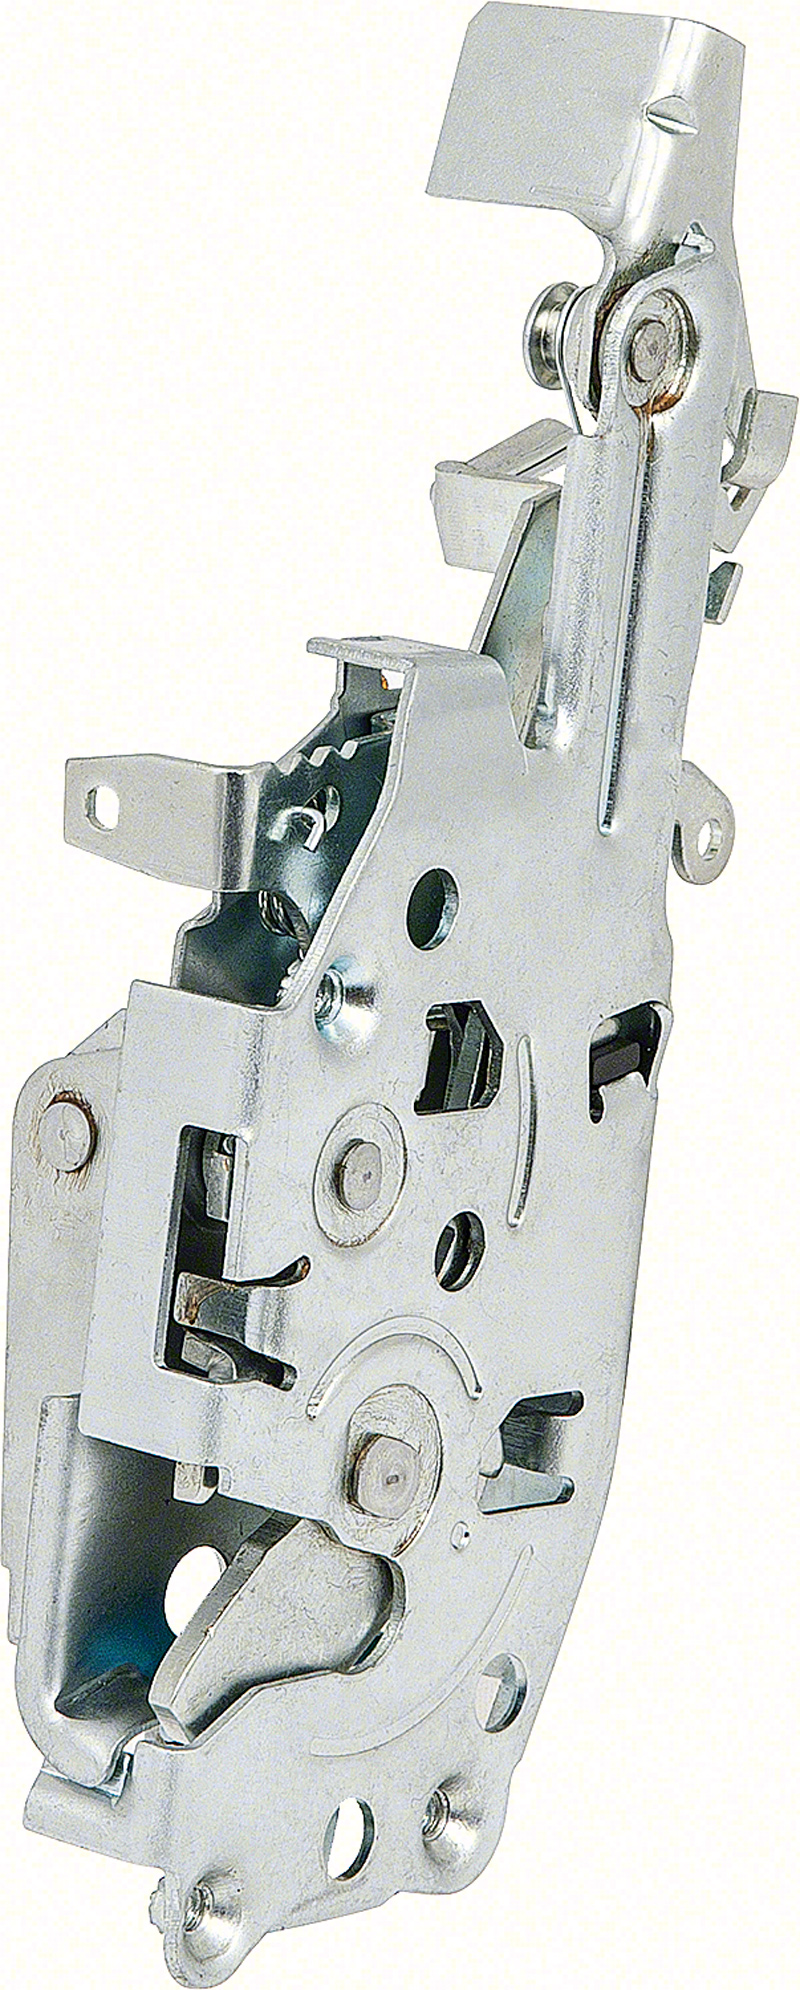 1965-66 Impala/Full Size Door Latch - RH  sc 1 st  Dodge Mopar Plymouth Reproduction Parts - Cuda Challenger Charger ... & Dodge Mopar Plymouth Reproduction Parts - Cuda Challenger Charger ...